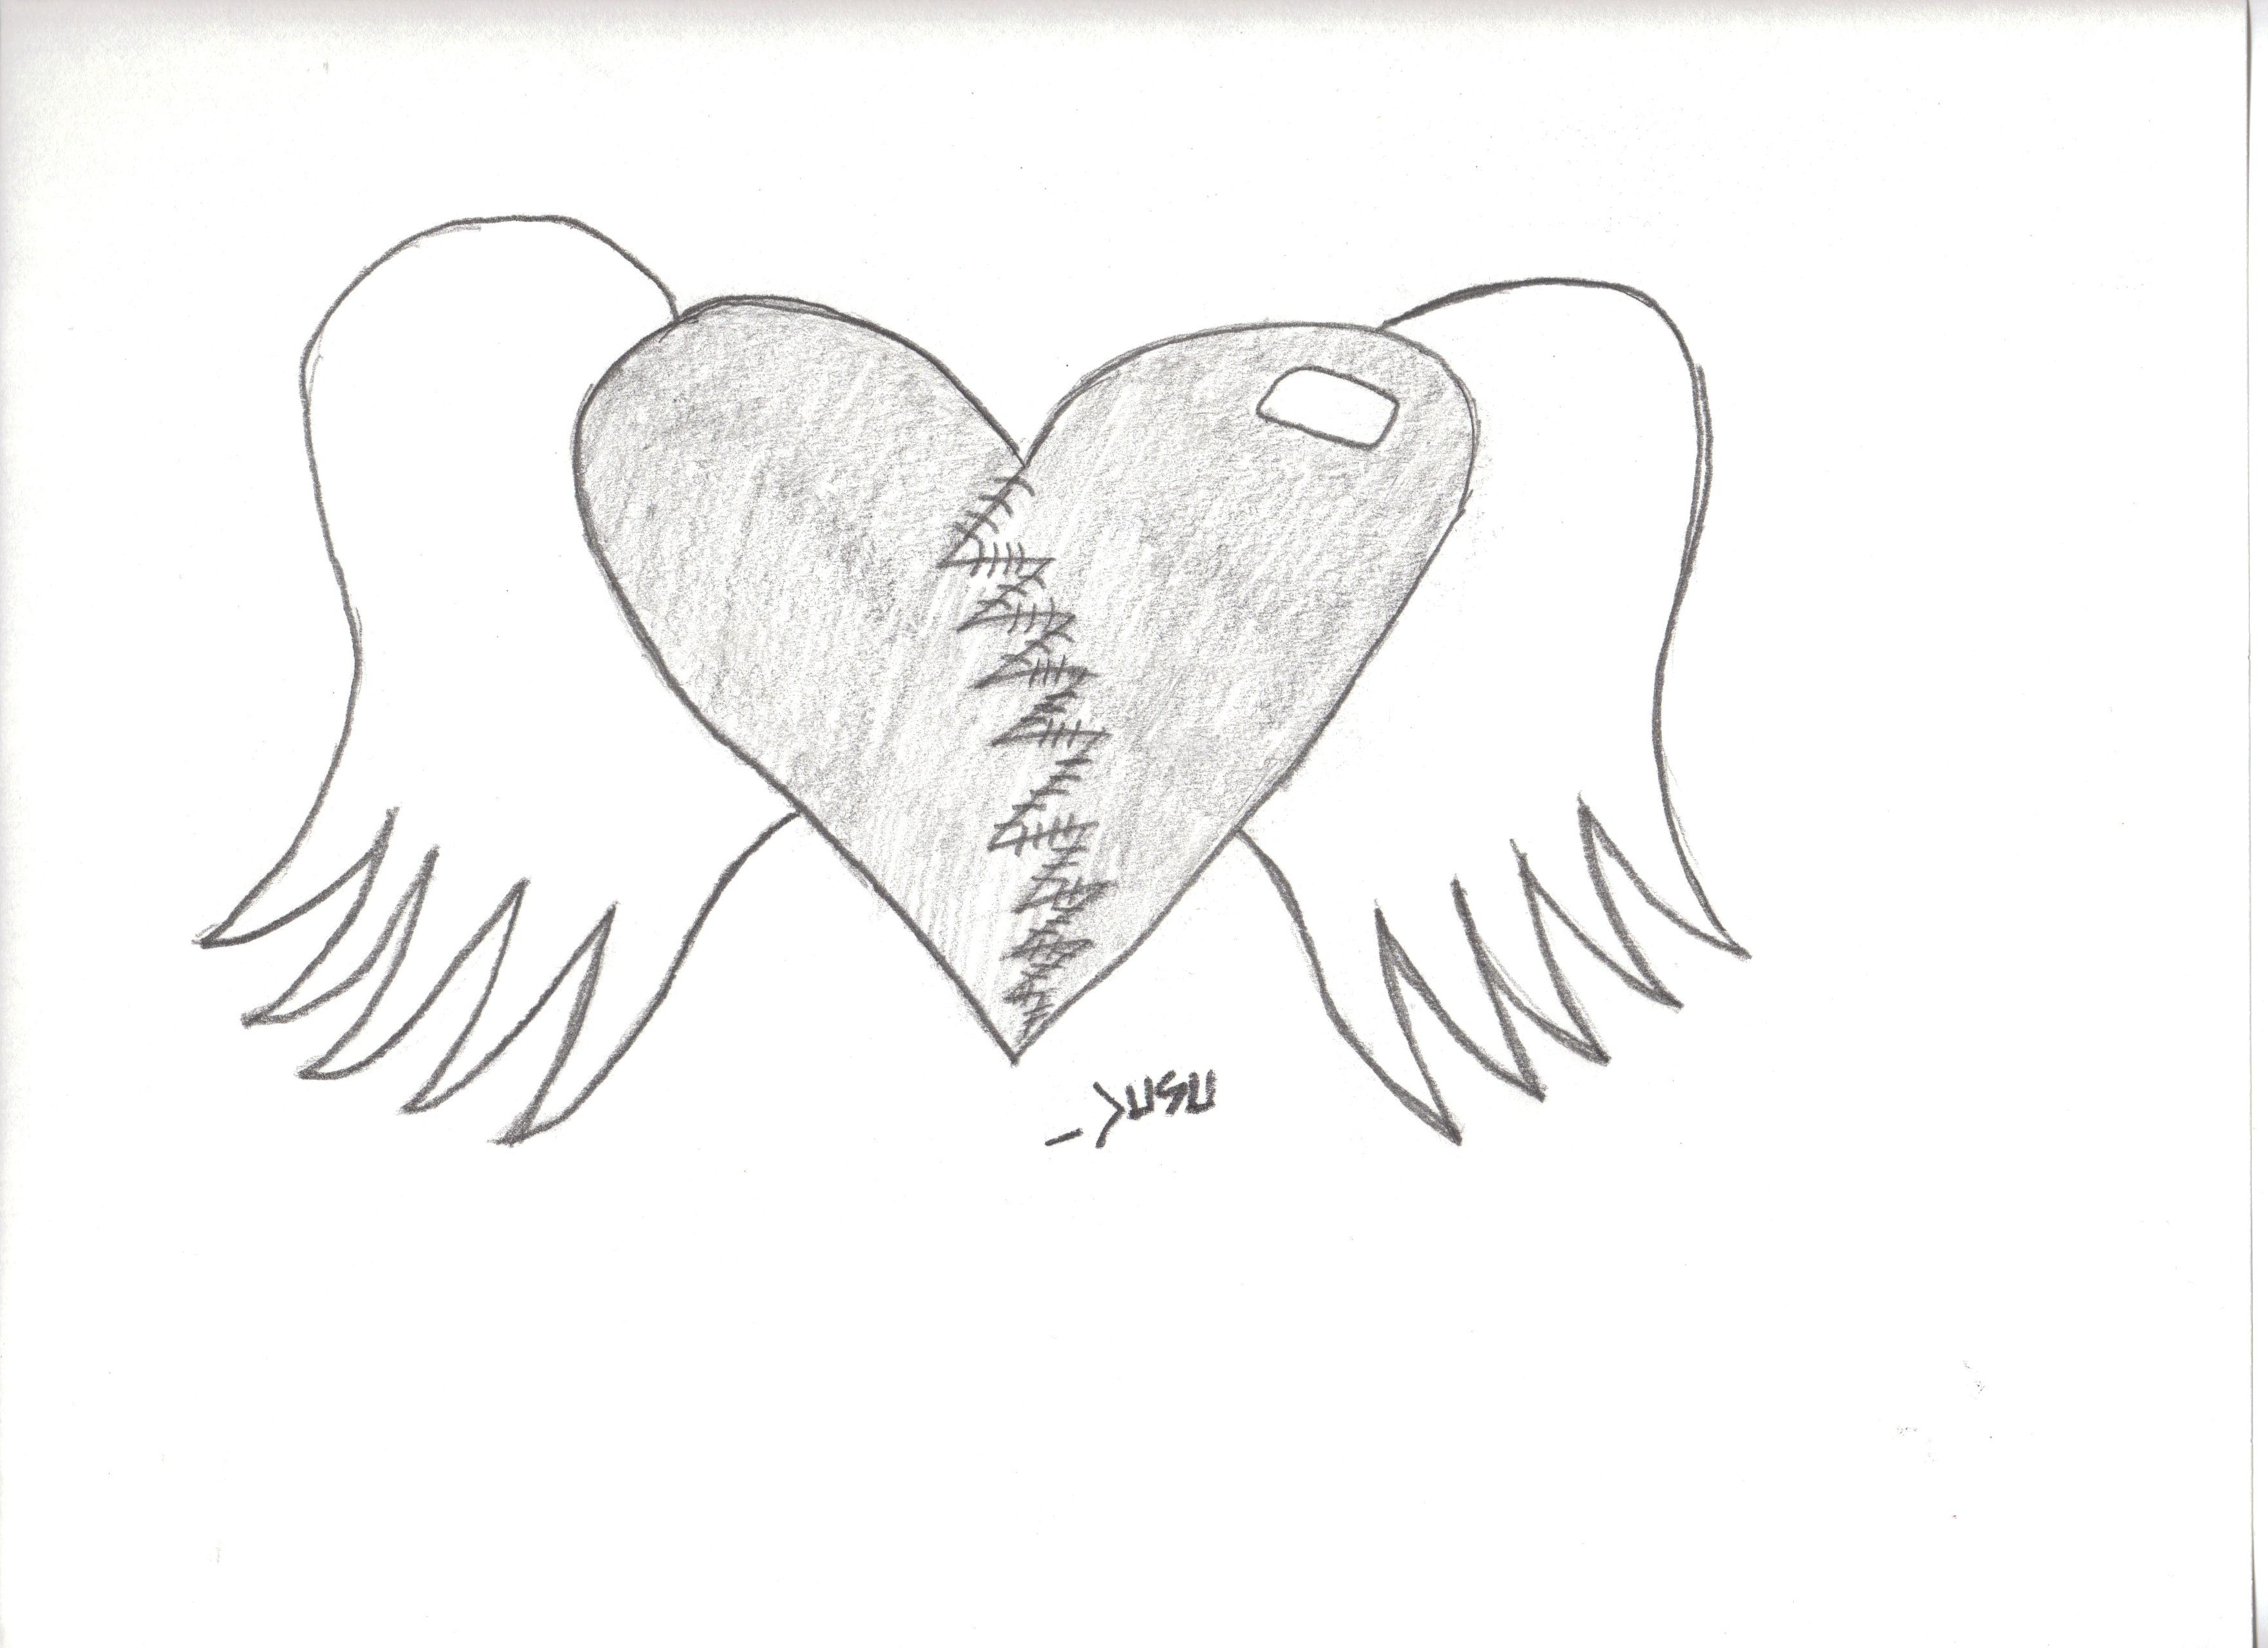 3510x2550 Graffiti Drawings Of Hearts With Wings